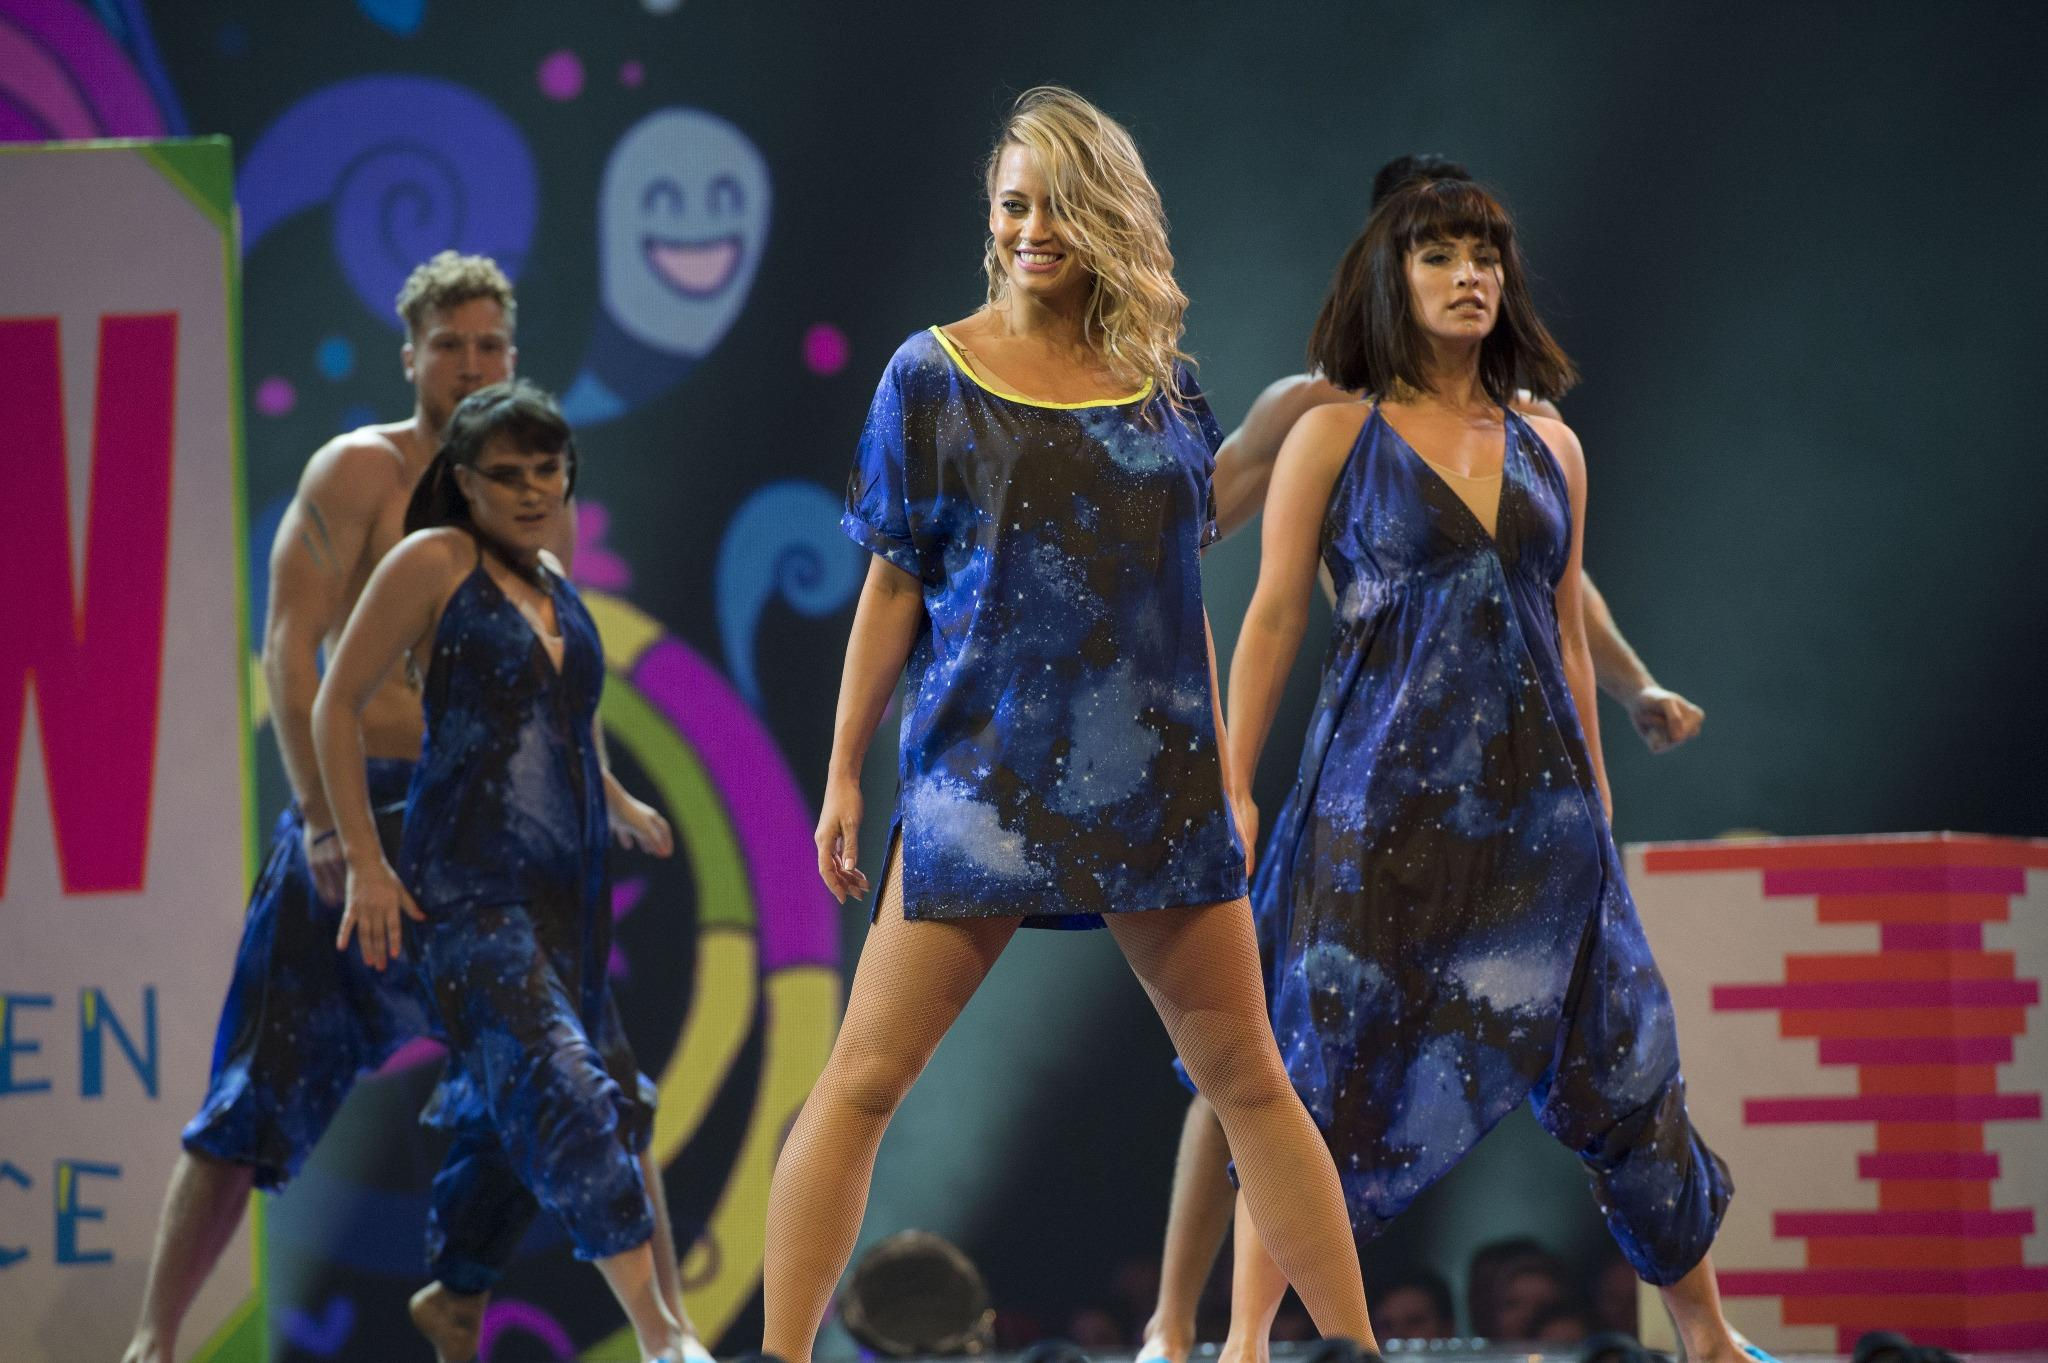 Love these @dancingleopard1 jumpsuits we wore in my #GotToDance performance http://t.co/S7vMP6aqHk!!! http://t.co/U19PSVQPXe